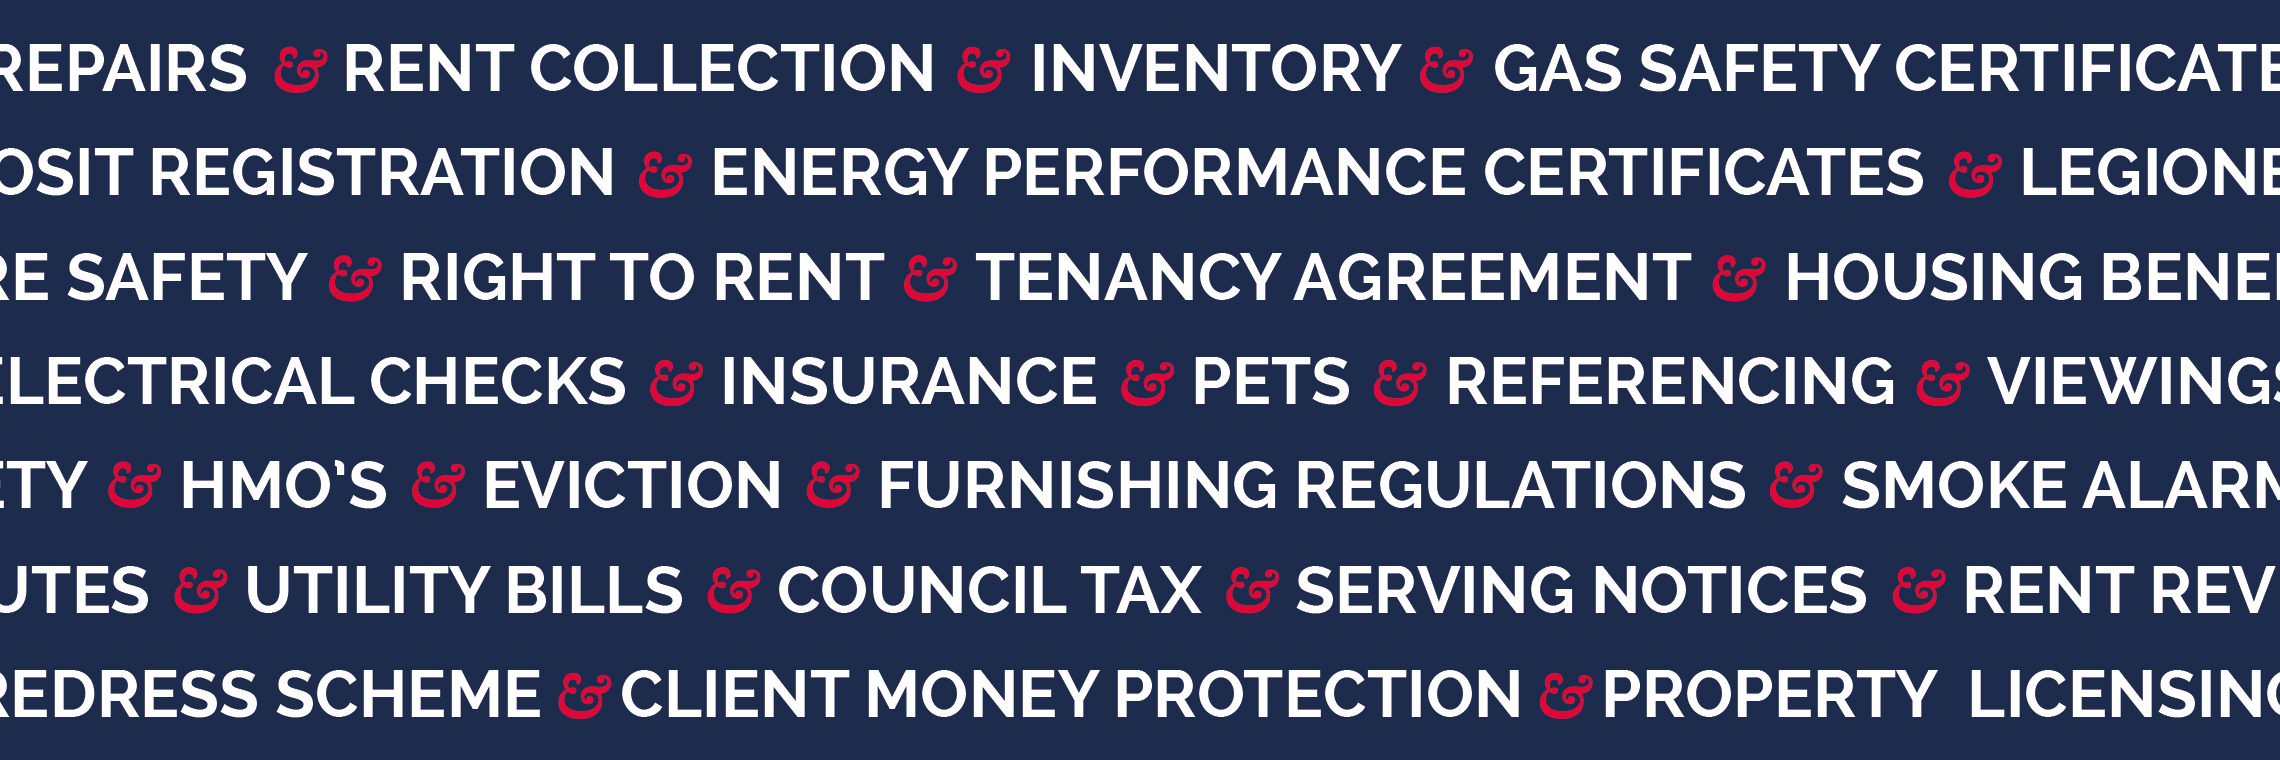 harker-and-bullman-dorset-lettings-agent-rented-property-legislation-banner-detailing-regulations-inventory-gas-safety-certificate-deposit-registration-energy-performance-registration-right-to-rent-tenancy-agreement-rent-collection-housing-benefit-electrical-checks-landlord-insurance-pets-referencing-HMO-Furnishing-Smoke-alarms-notices-rent-review-client-money-protection